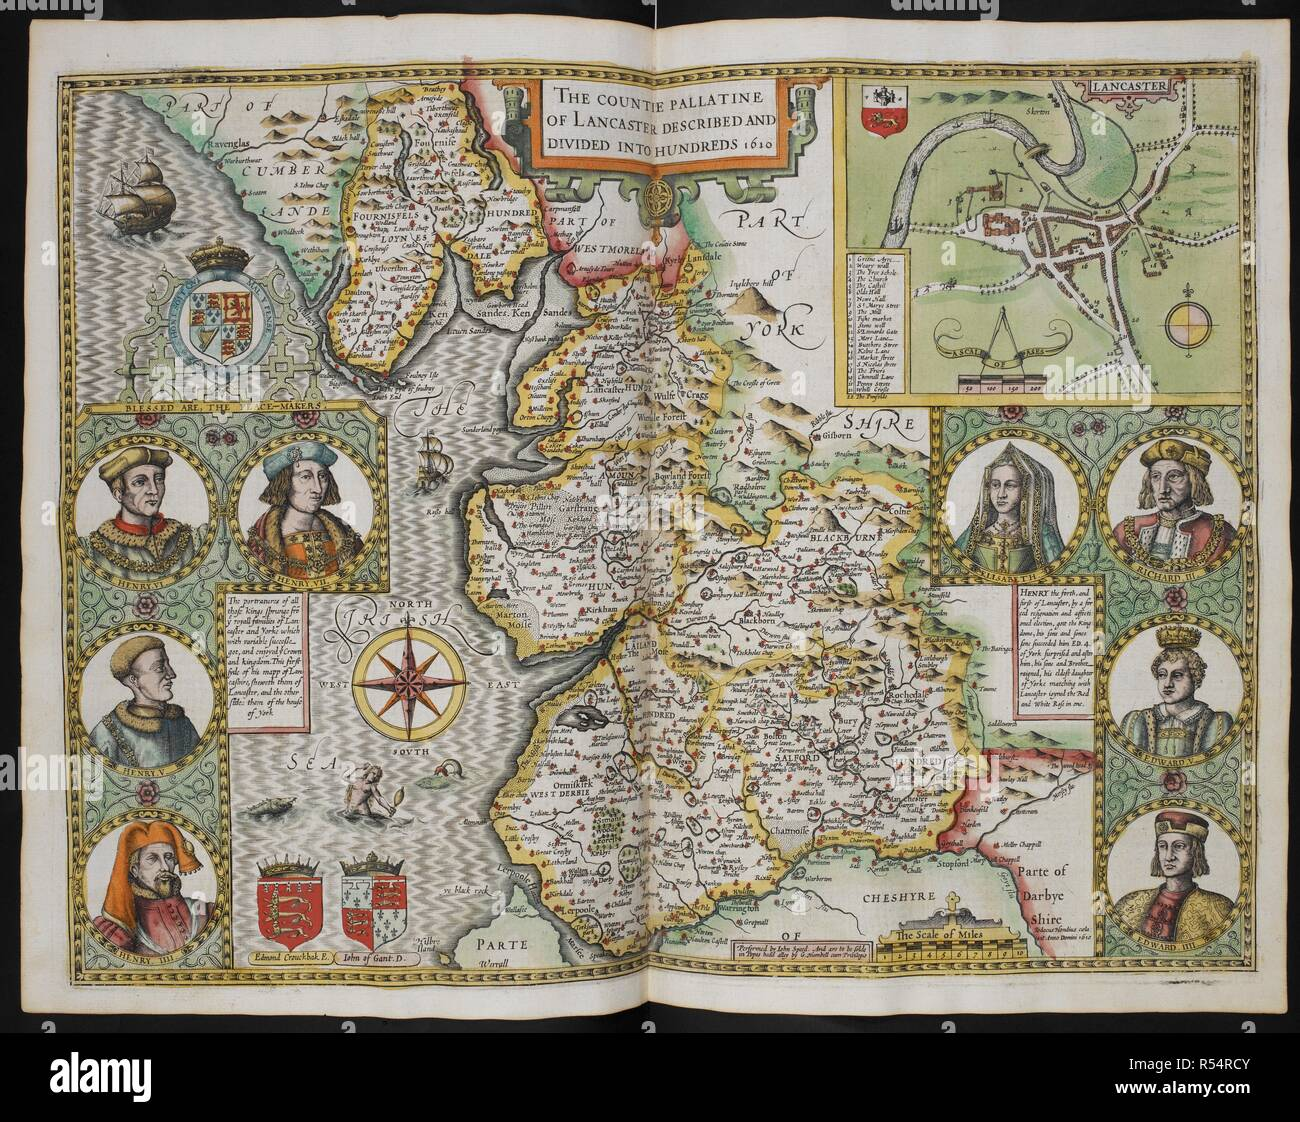 Map Of England Lancaster.The Countie Pallatine Of Lancaster Described And Divided Into